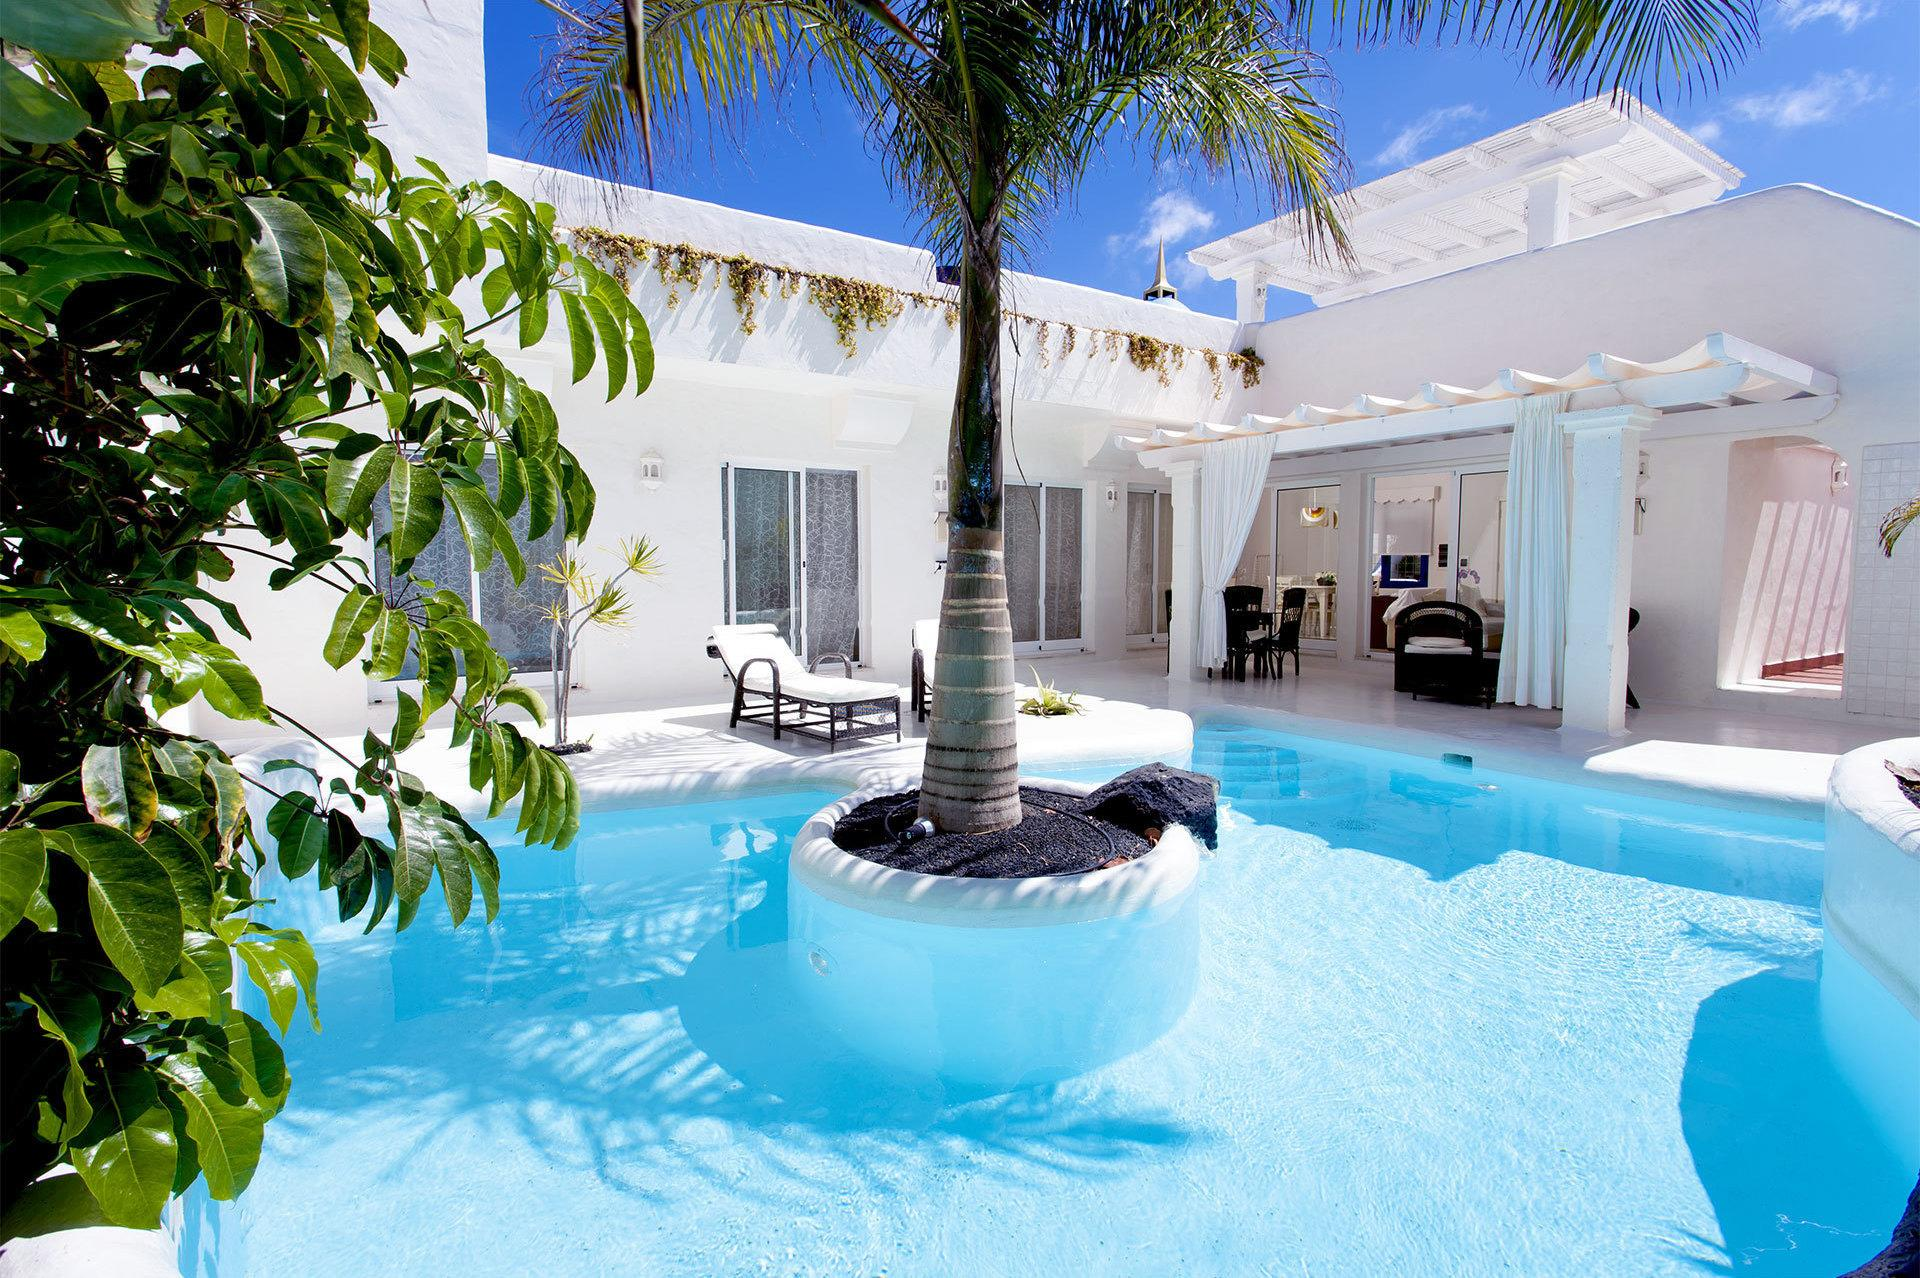 """<p>Bahiazuloffers all the amenities of a large hotel, but you stay in your own villa, each with a private pool and Jacuzzi and a roof terrace with BBQ. Each villa offers three ensuitebedrooms and inbuilt music systems. Visit<a href=""""https://bahiazul.com/en"""" target=""""_blank"""">bahiazul.com</a>for more.</p>"""